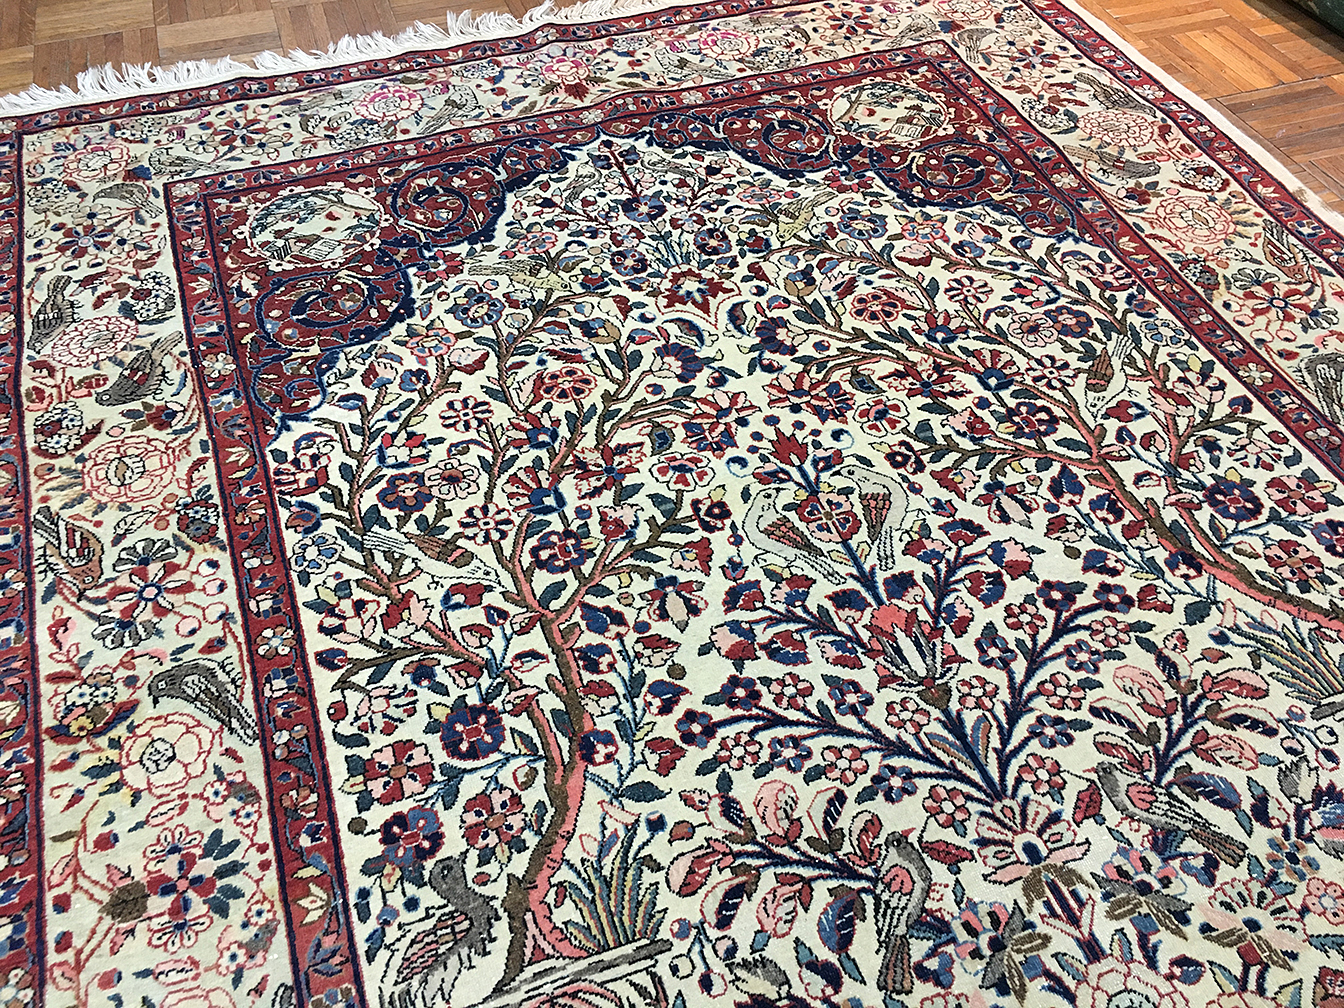 Antique kashan, dabir Rug - # 53671